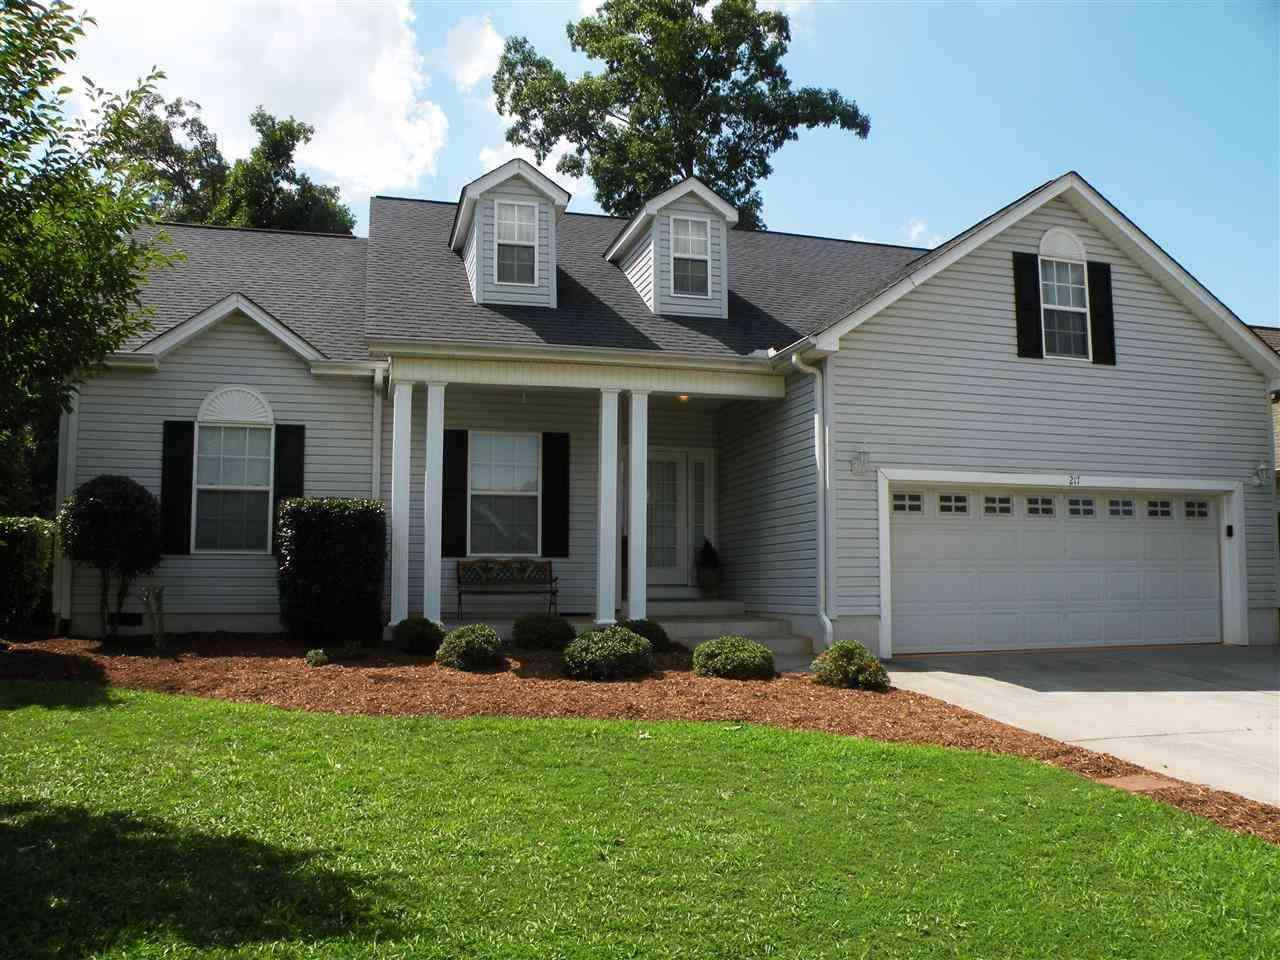 Rental Homes for Rent, ListingId:29755391, location: 217 Savannah Drive Anderson 29621